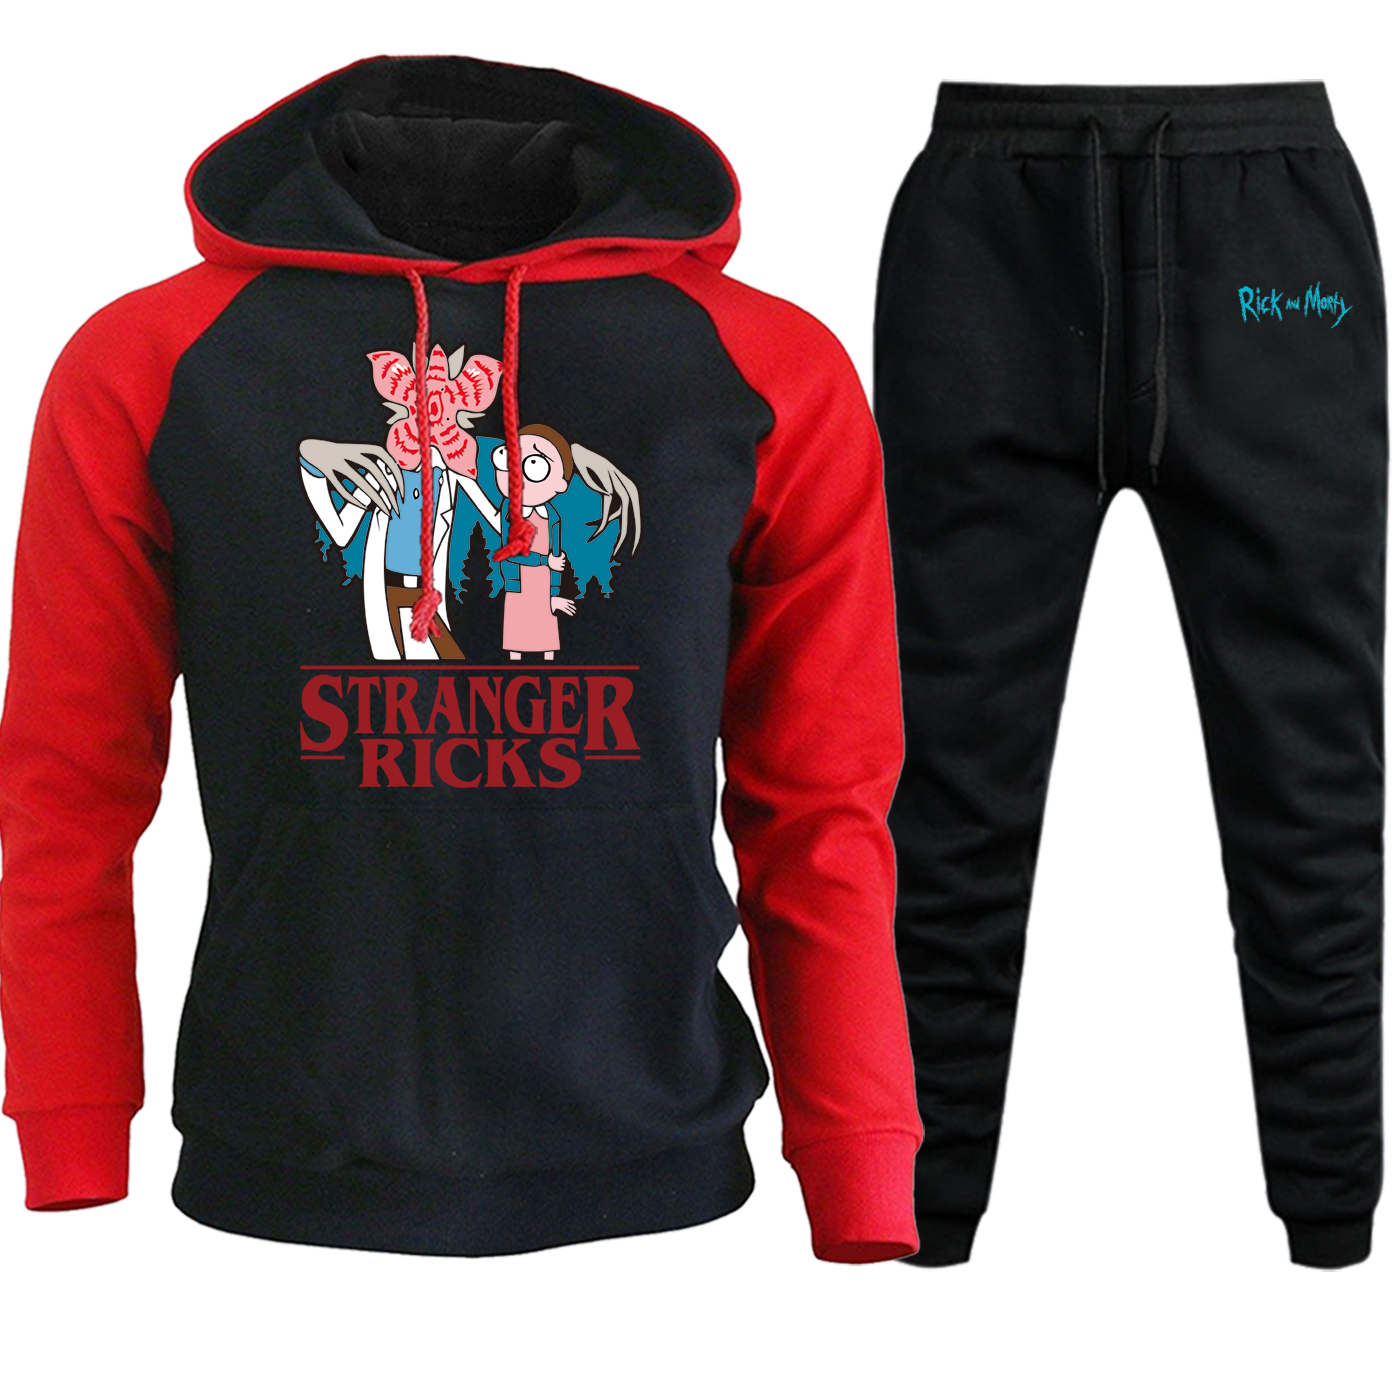 Stranger Things Rick And Morty Autumn Winter 2019 Mens Fashion Hooded Raglan Streetwear Casual Suit Pullover+Pants 2 Piece Set